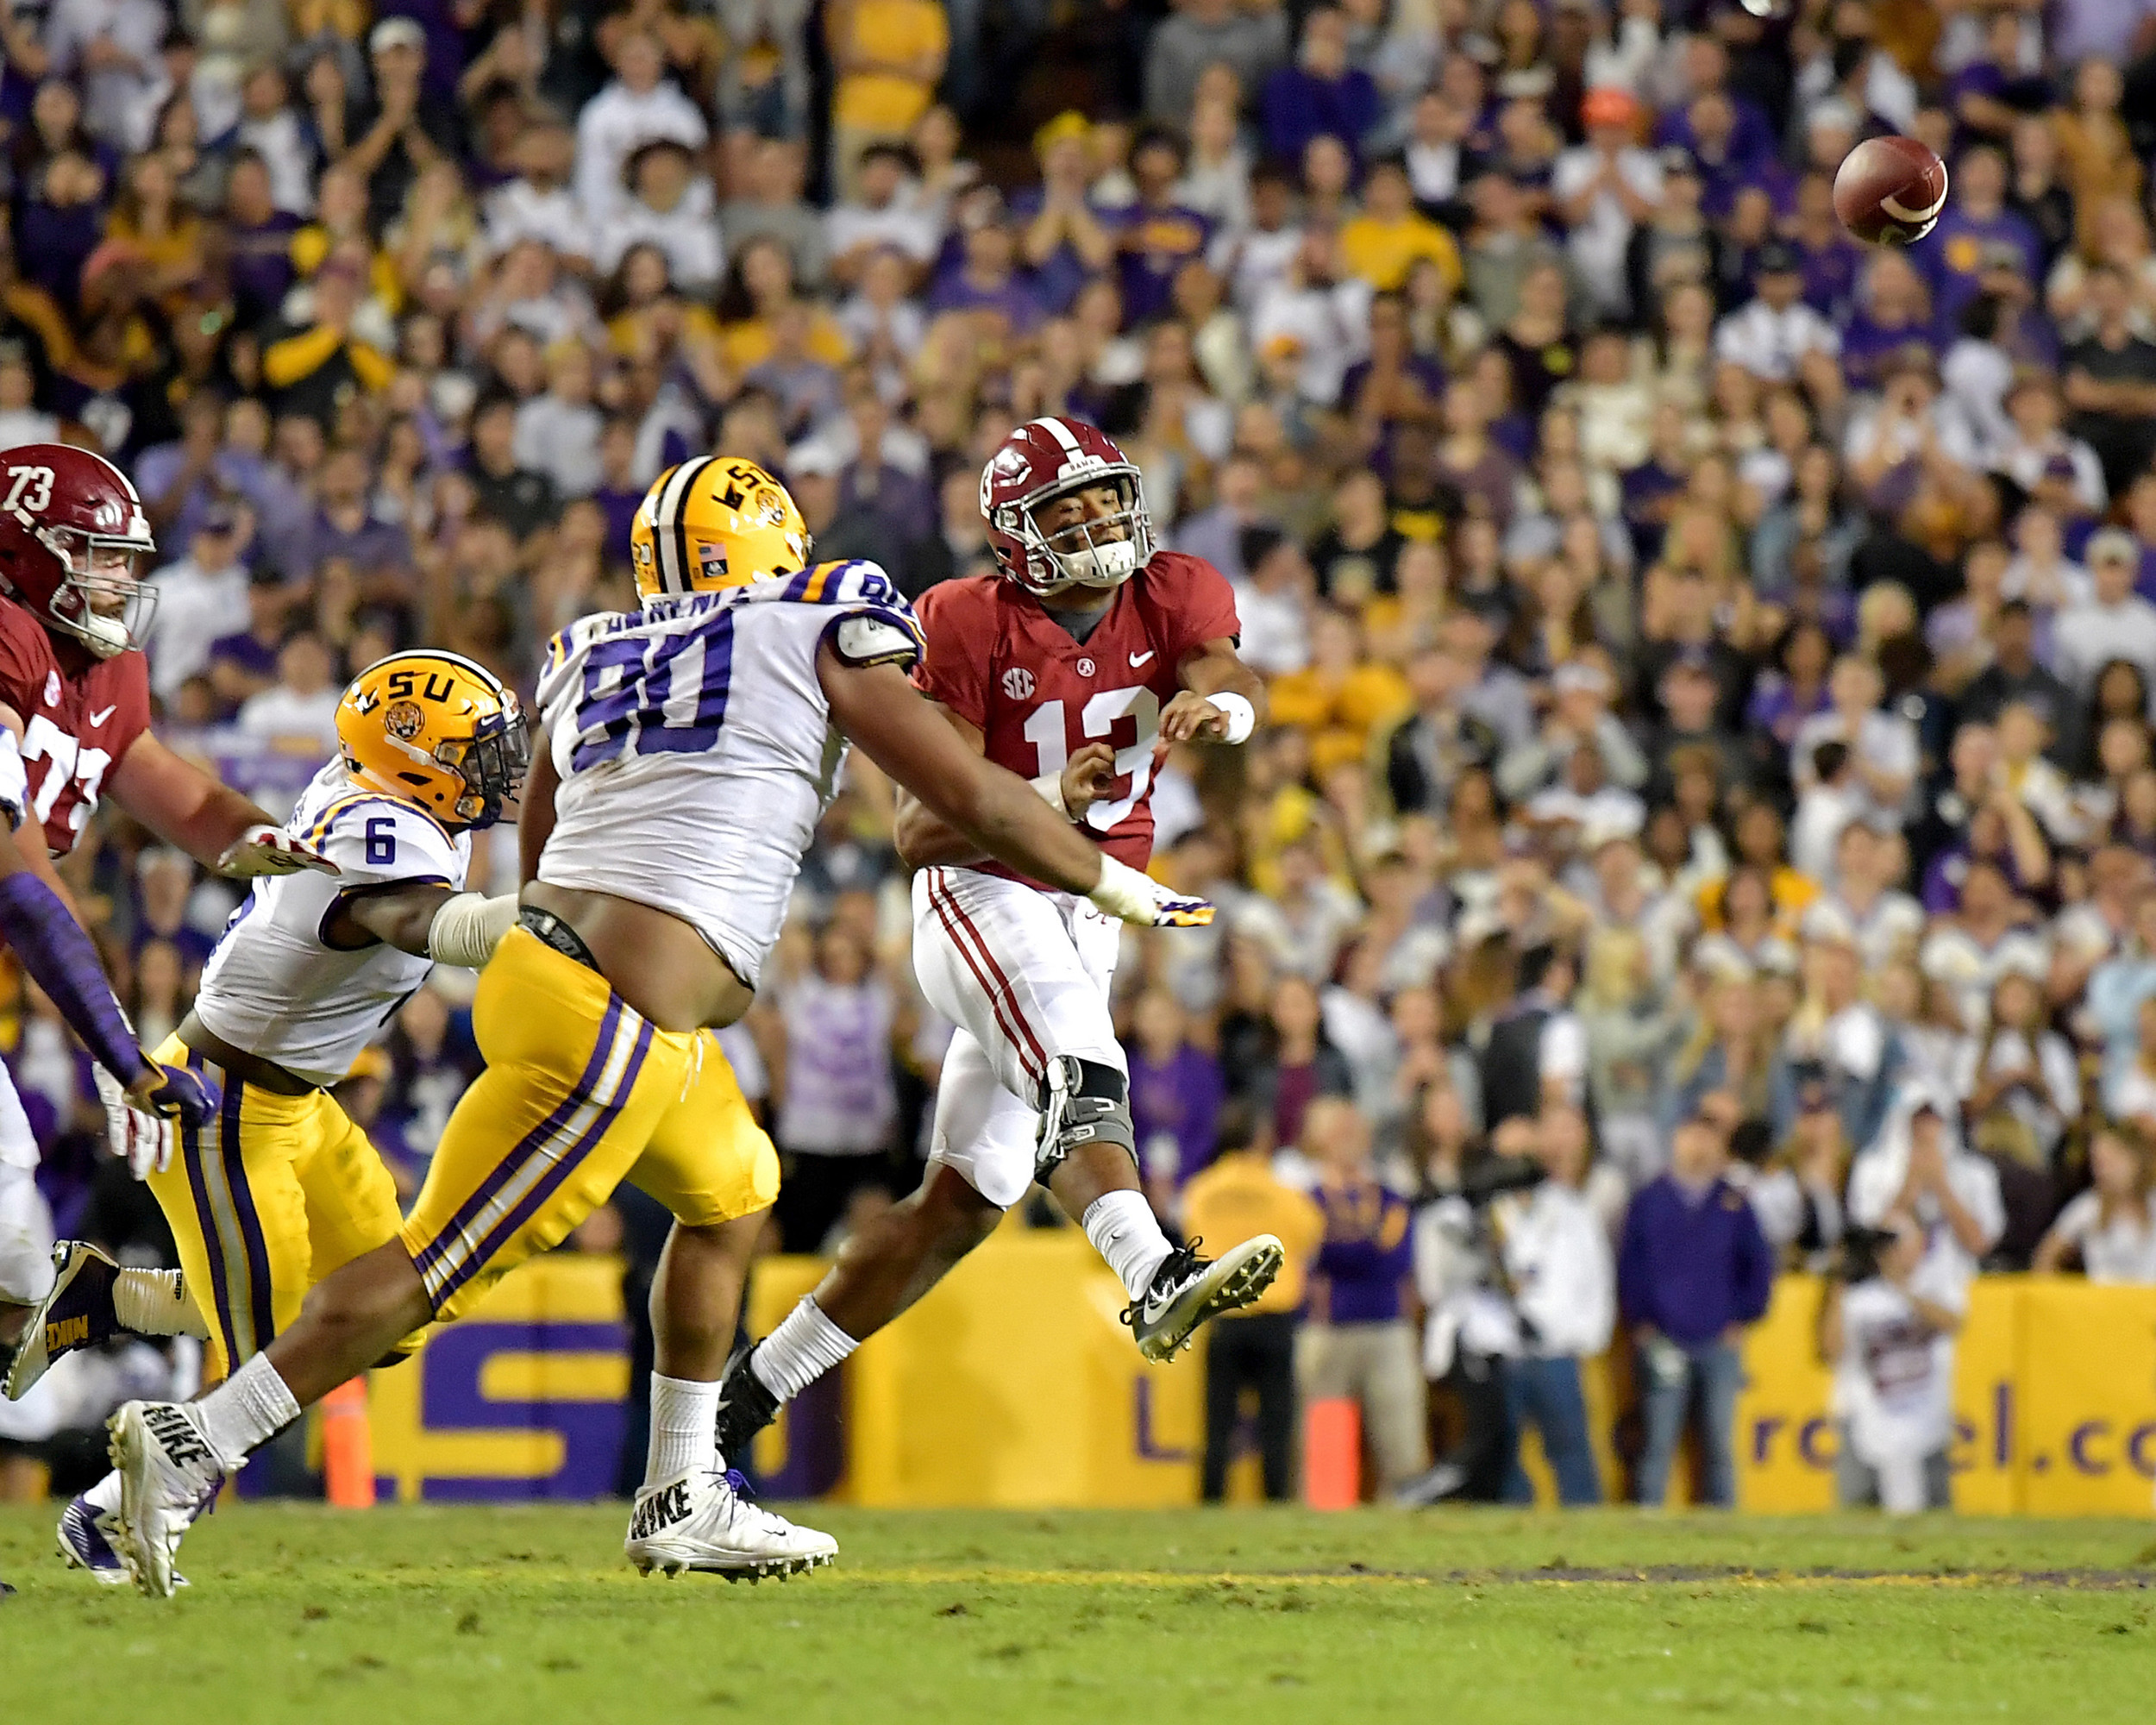 Alabama Crimson Tide quarterback Tua Tagovailoa (13) scrambles and passes under pressure in the first half of an NCAA football game against the LSU Tigers Saturday, November 3, 2018, at Tiger Stadium in Baton Rouge, La.